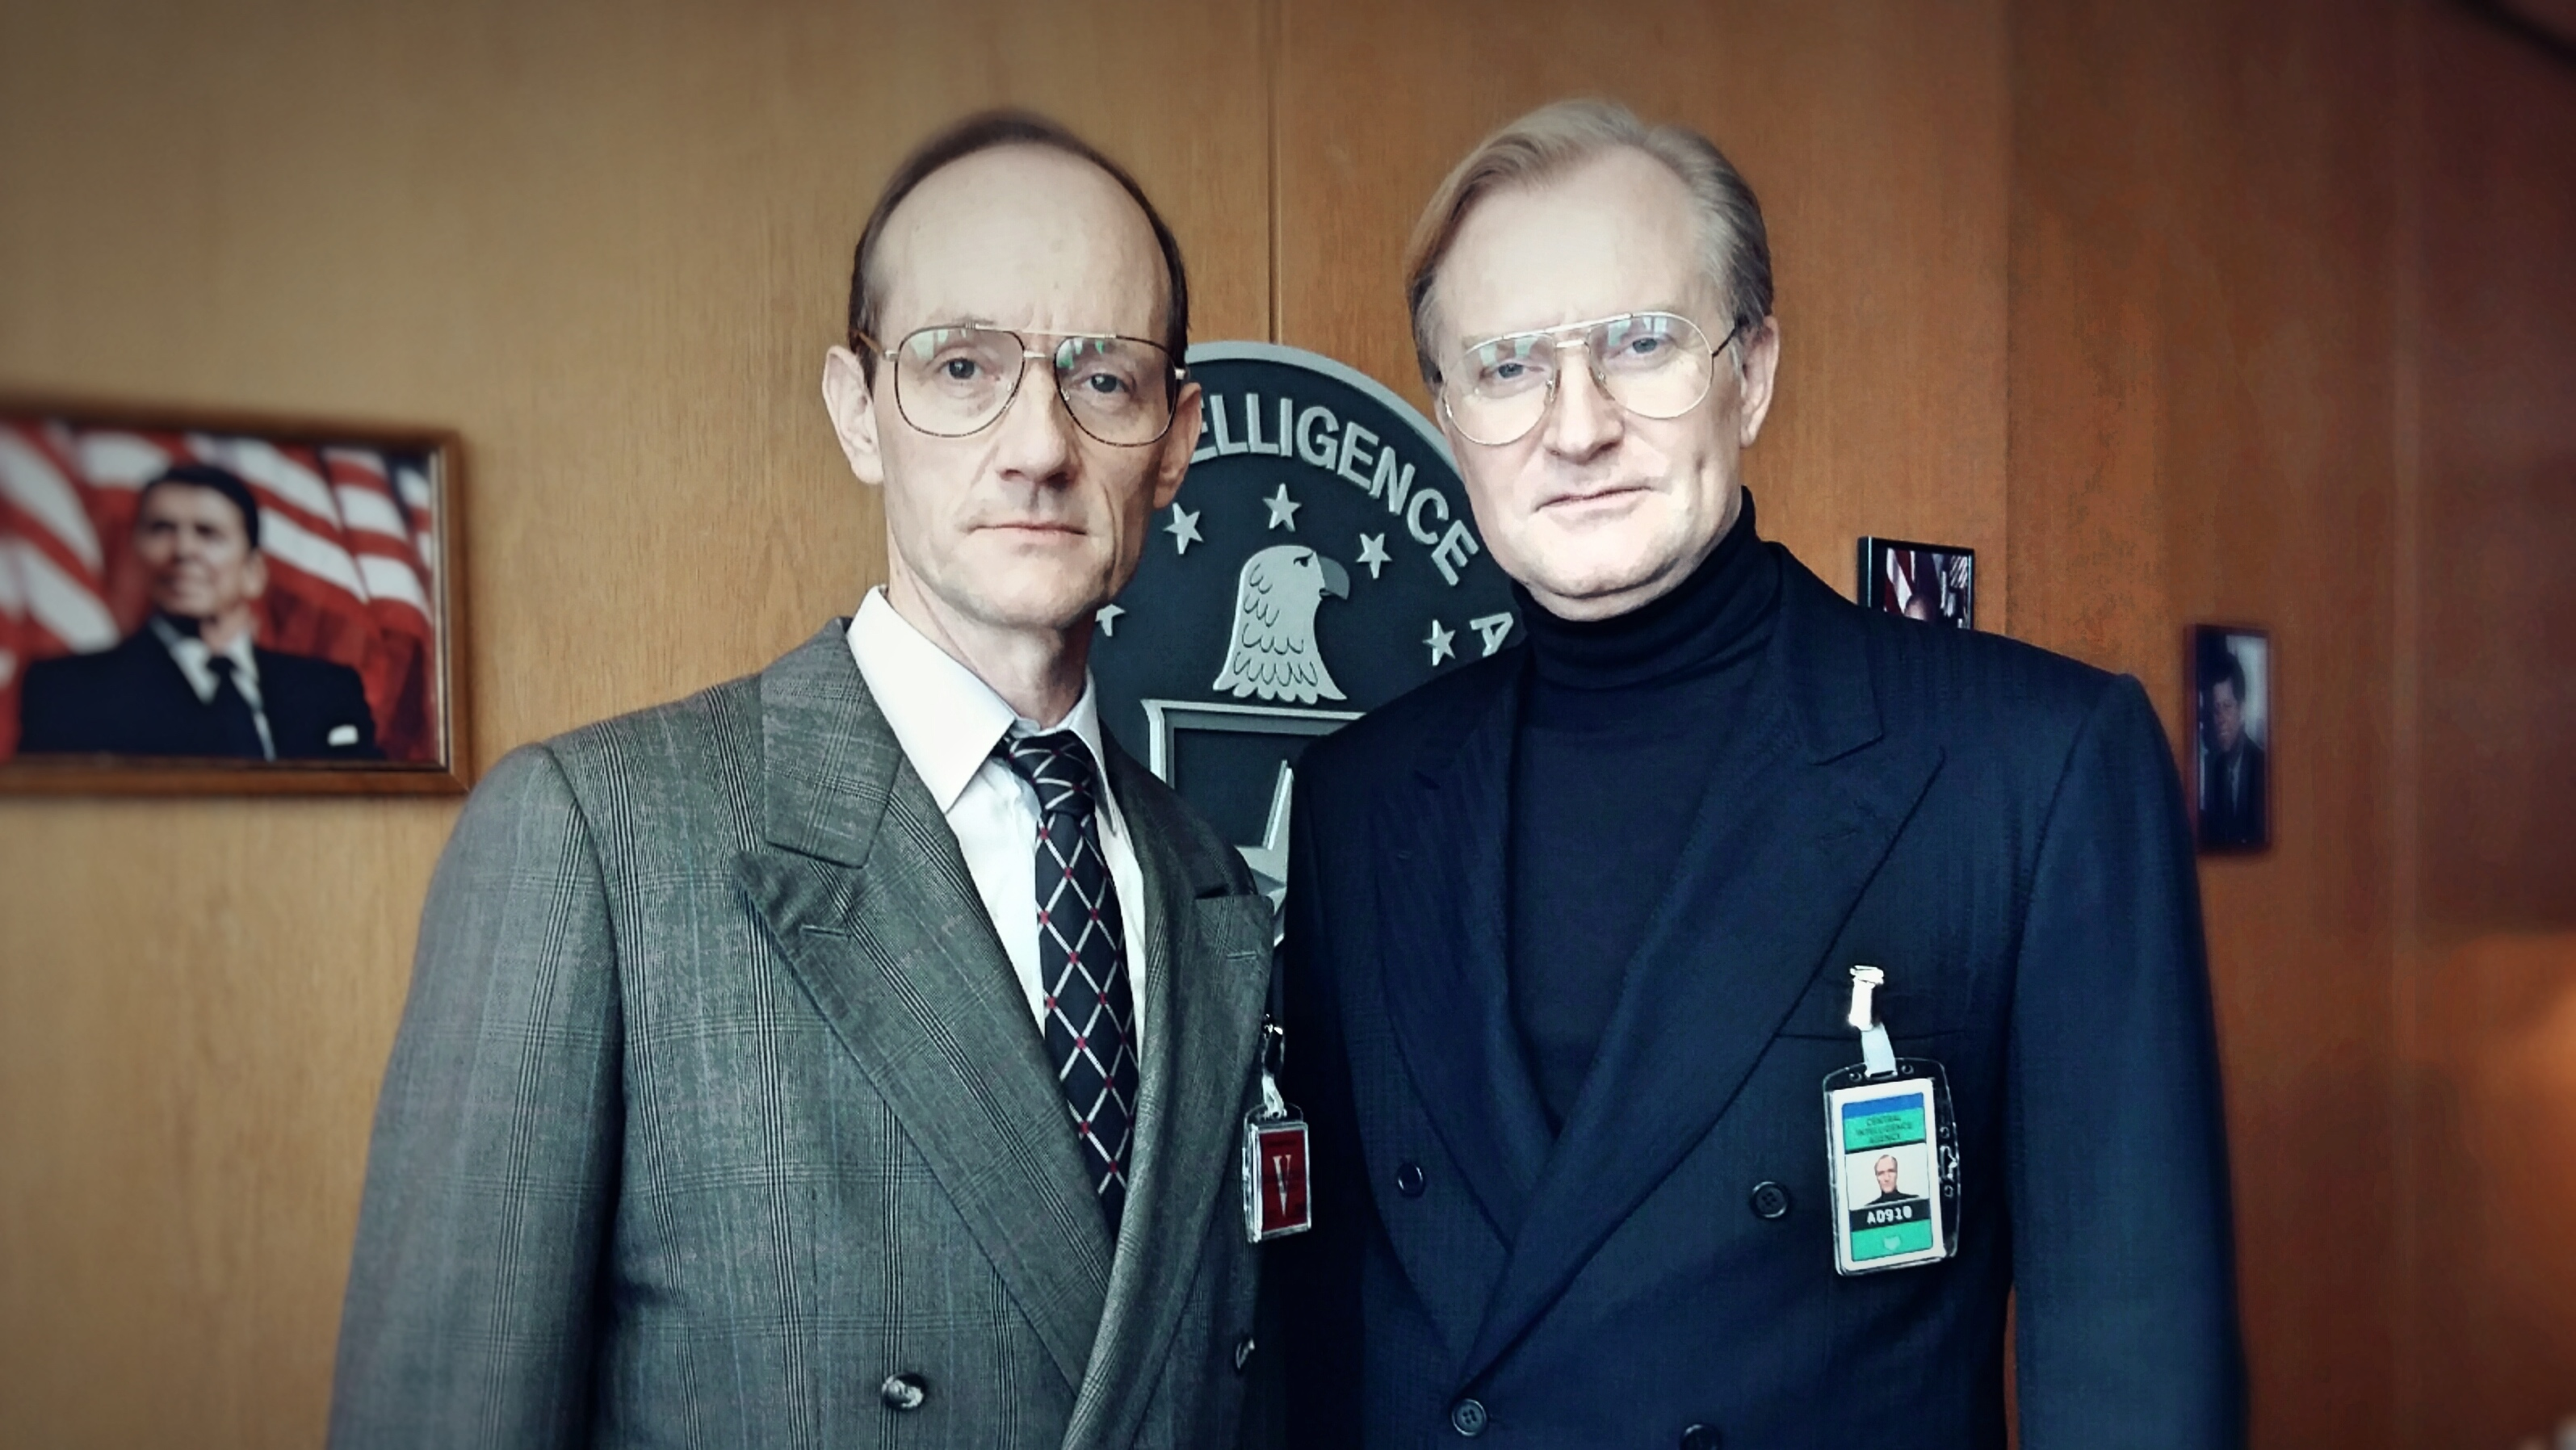 Ulrich Thomsen and Michael Ihnow